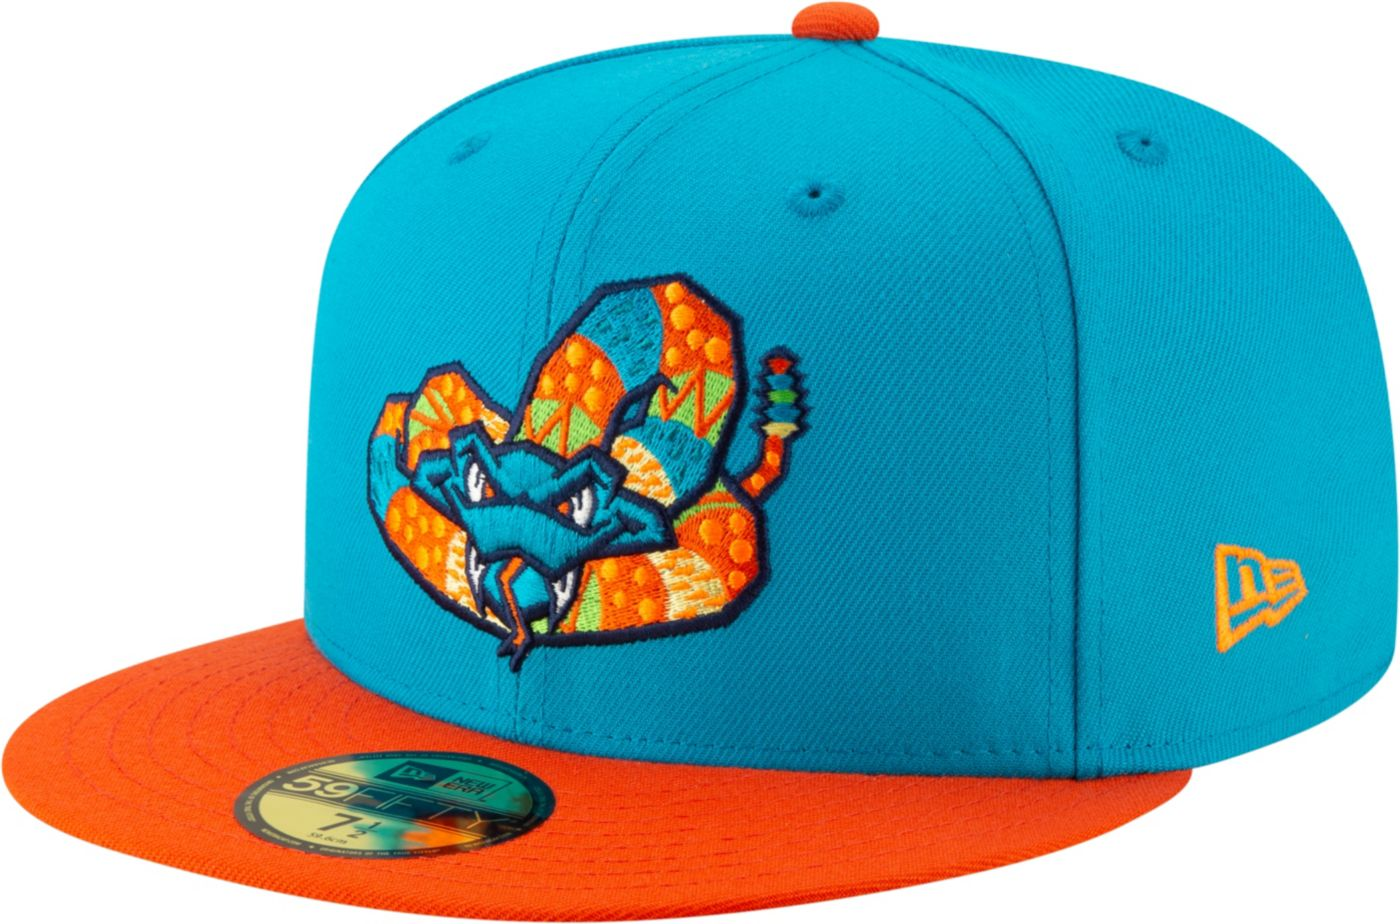 New Era Men's Wisconsin Timber Rattlers 59Fifty 2019 COPA Authentic Hat